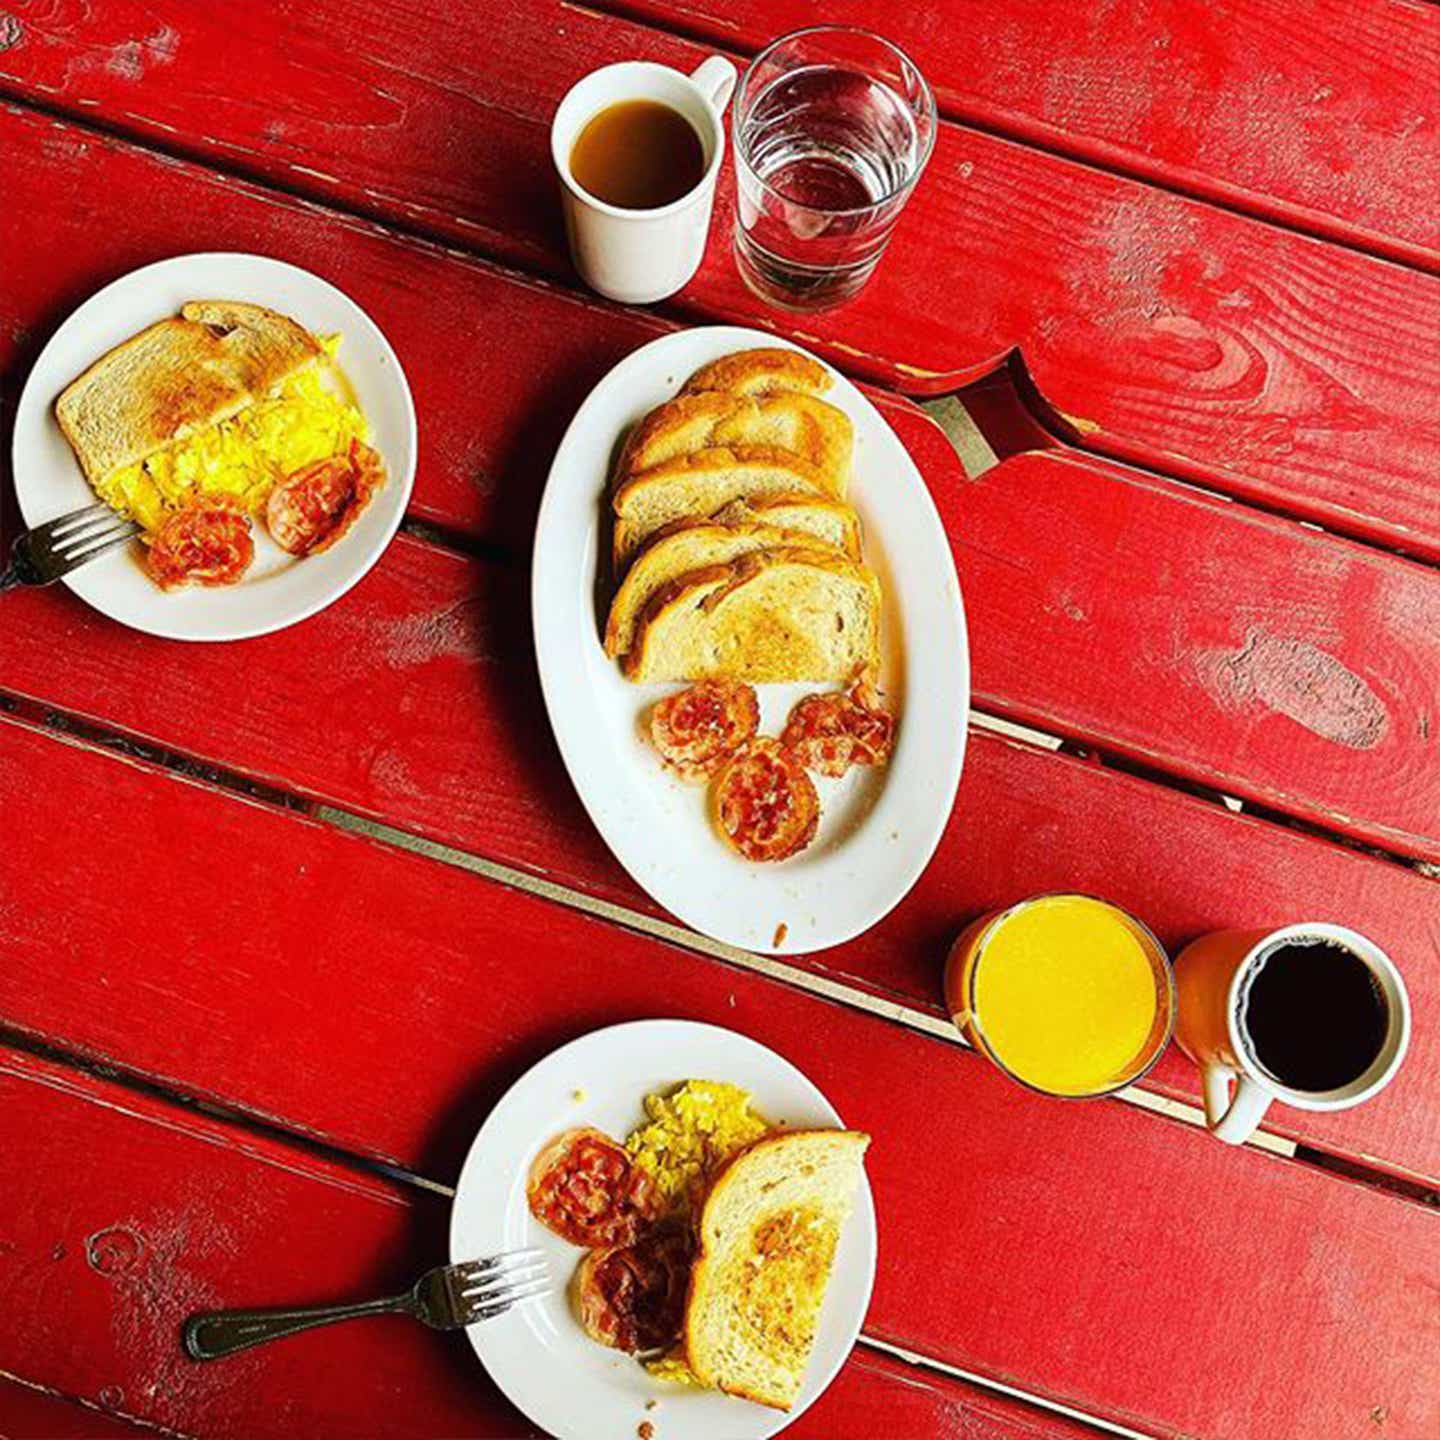 Three plates of egg and toast with beverages are placed on a red picnic table.